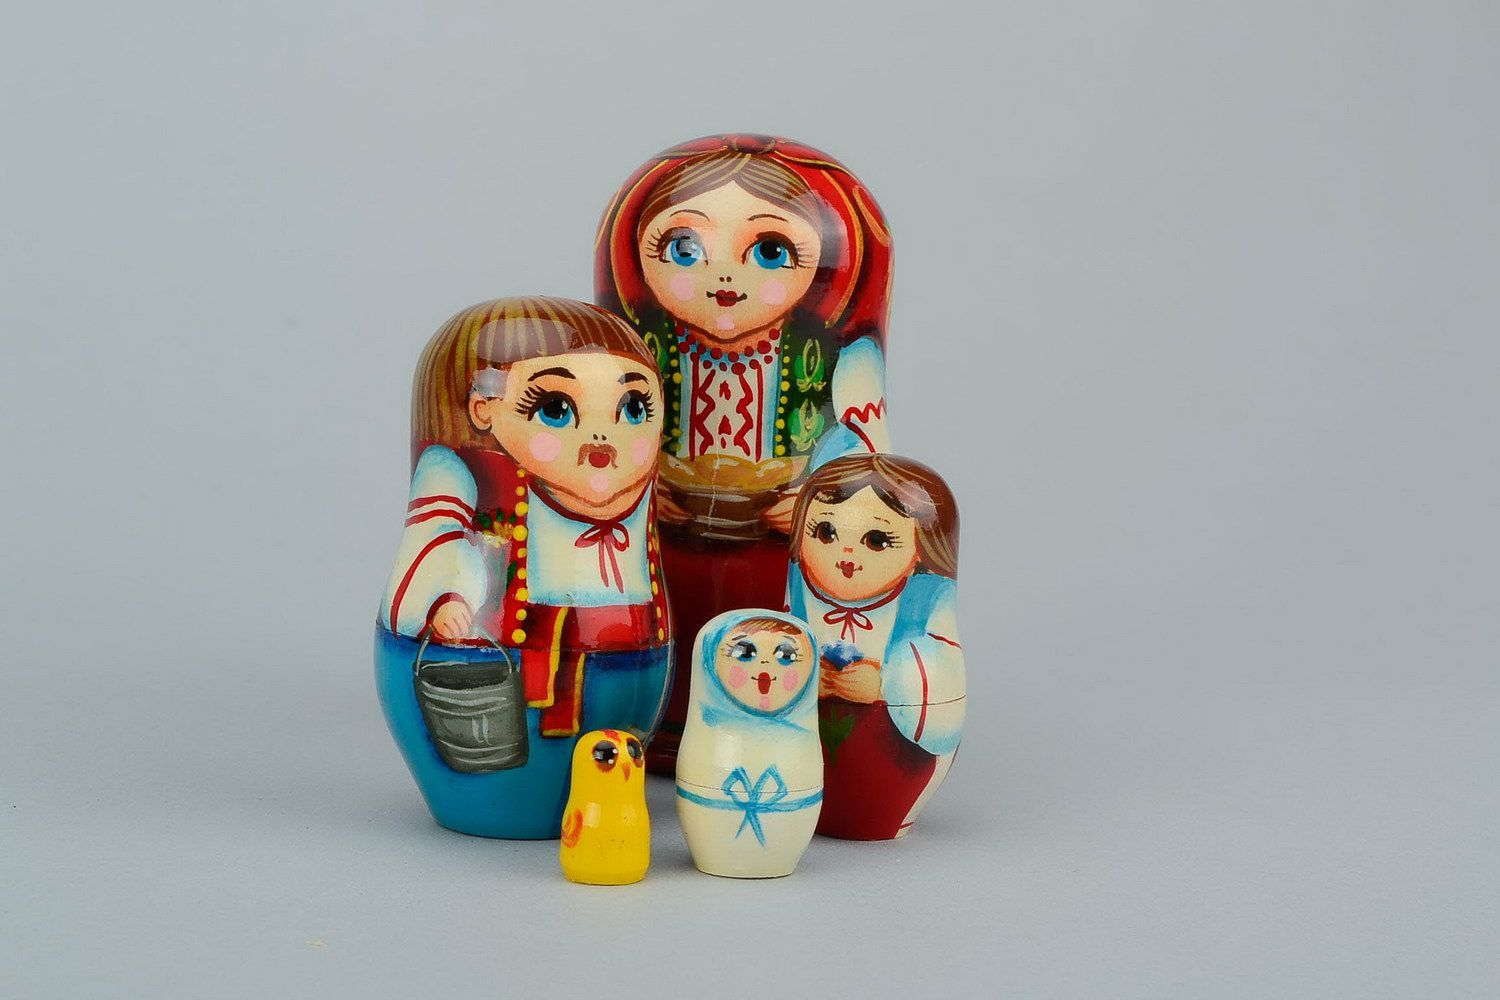 Nesting doll in embroidered shirt with dumplings photo 6